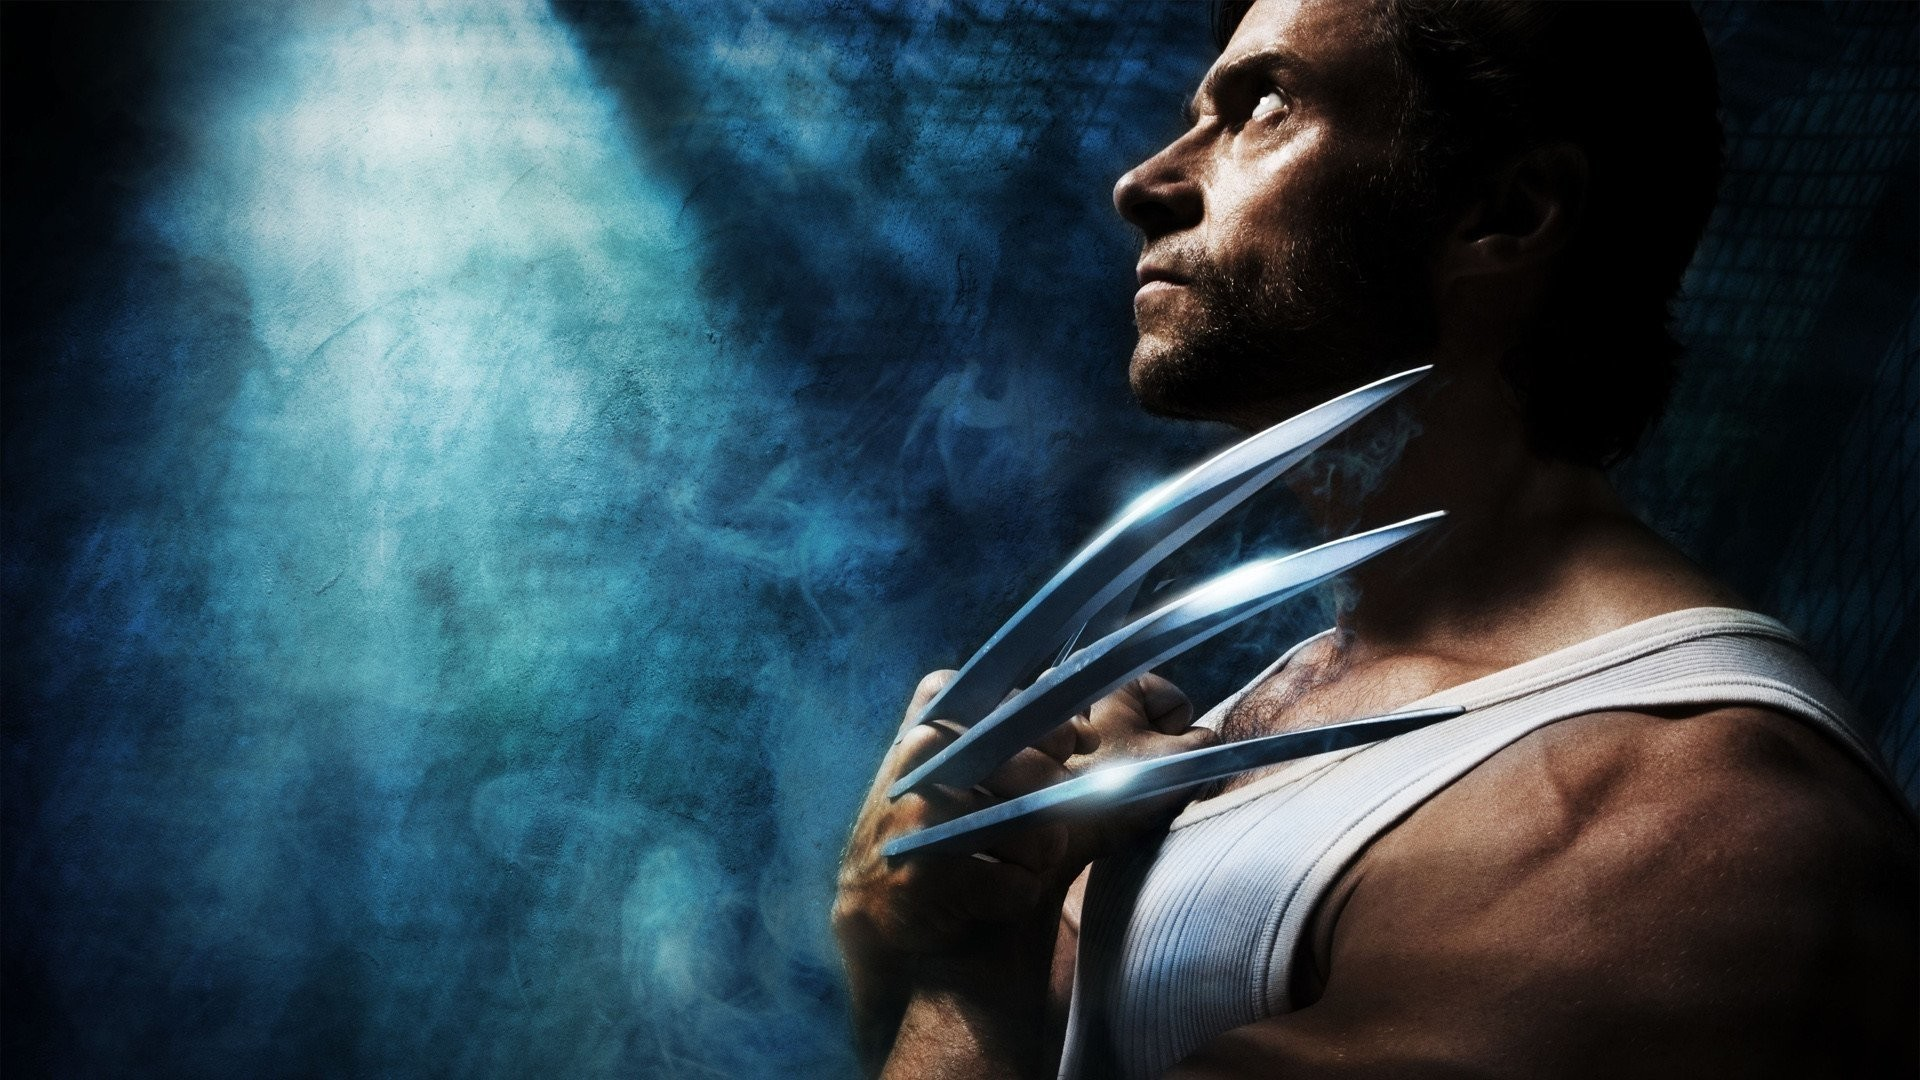 X Men Origins Wolverine Game Wallpaper (63 images)